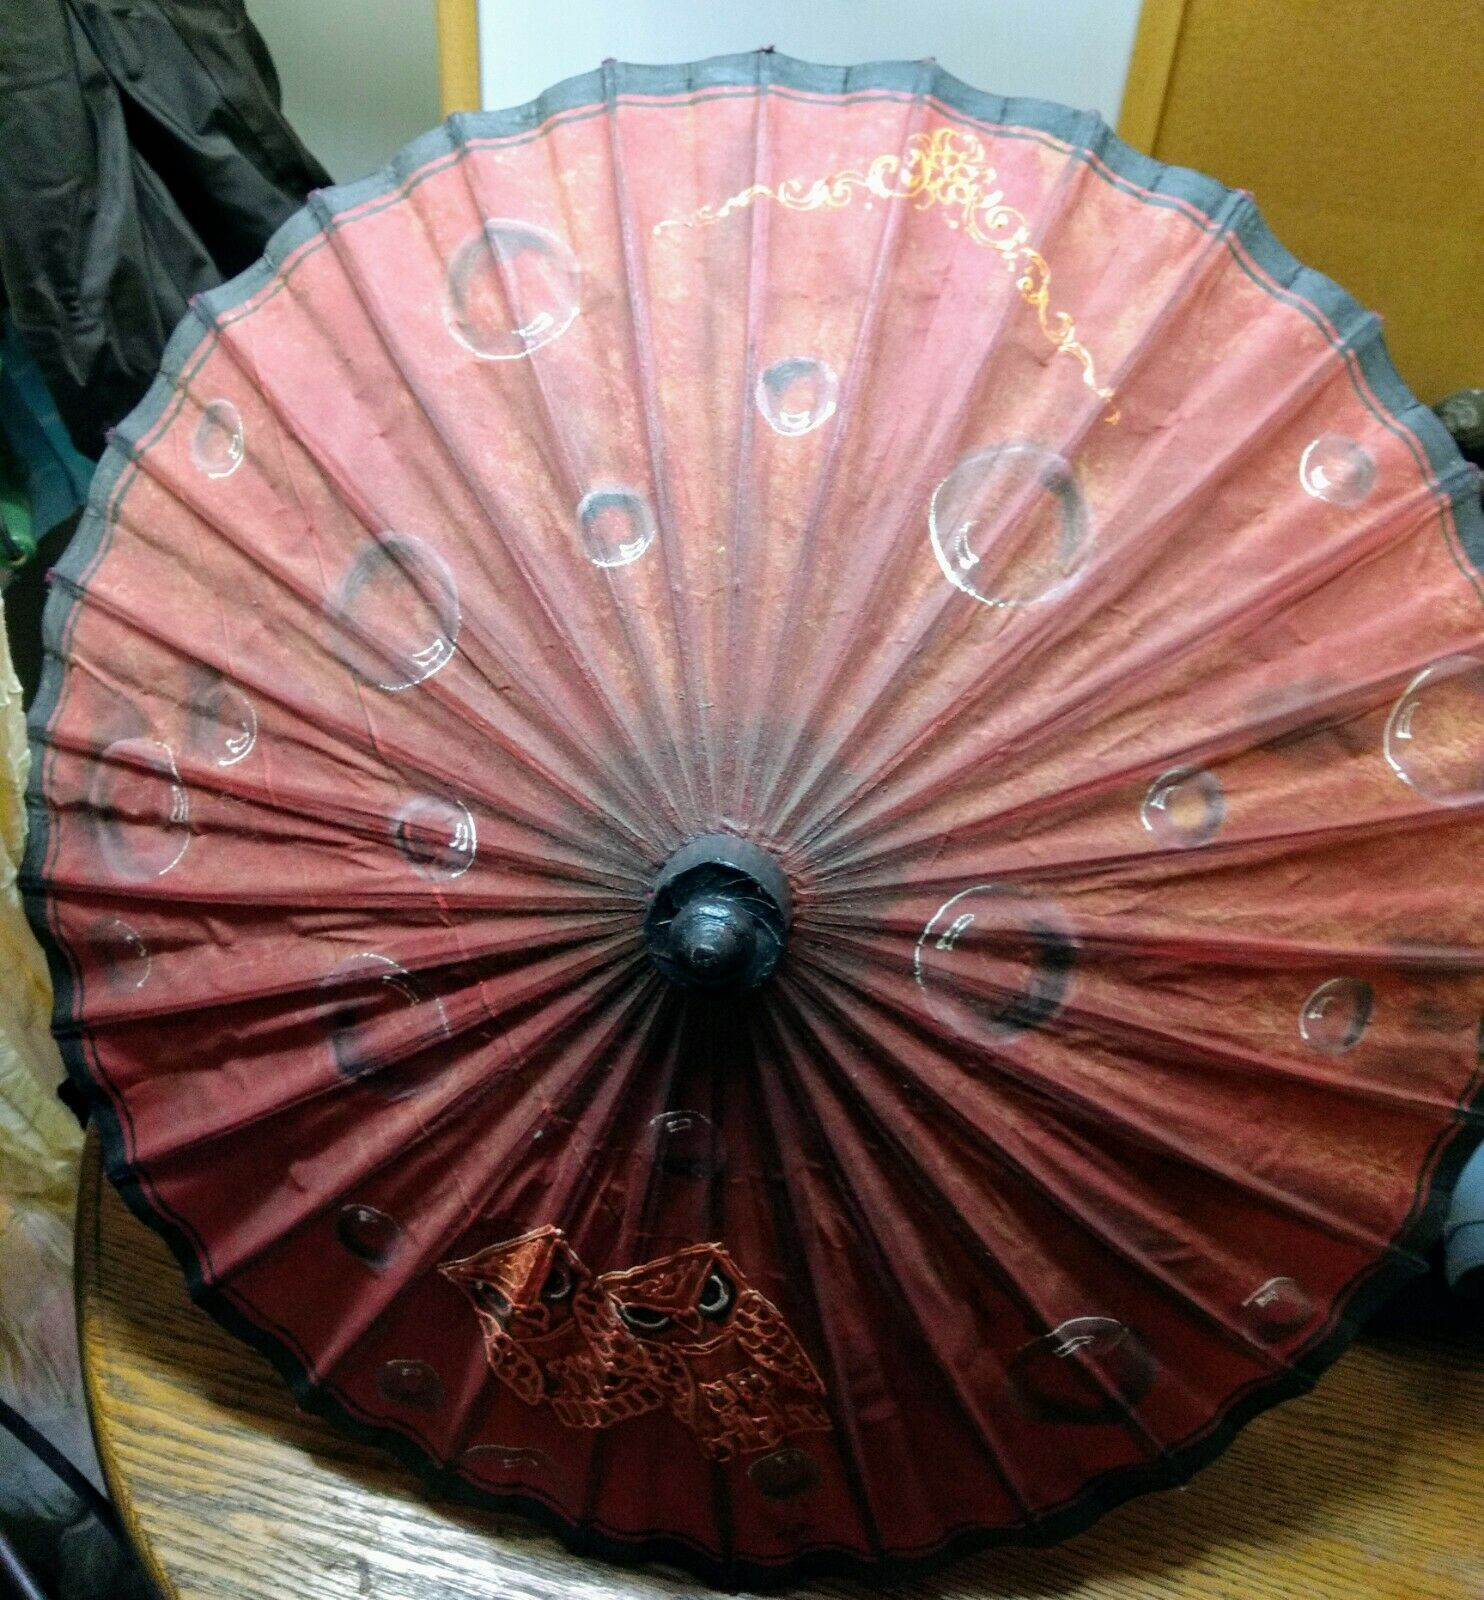 Handpainted Cloth Parasol/Umbrella From The Parasol Project In Burma